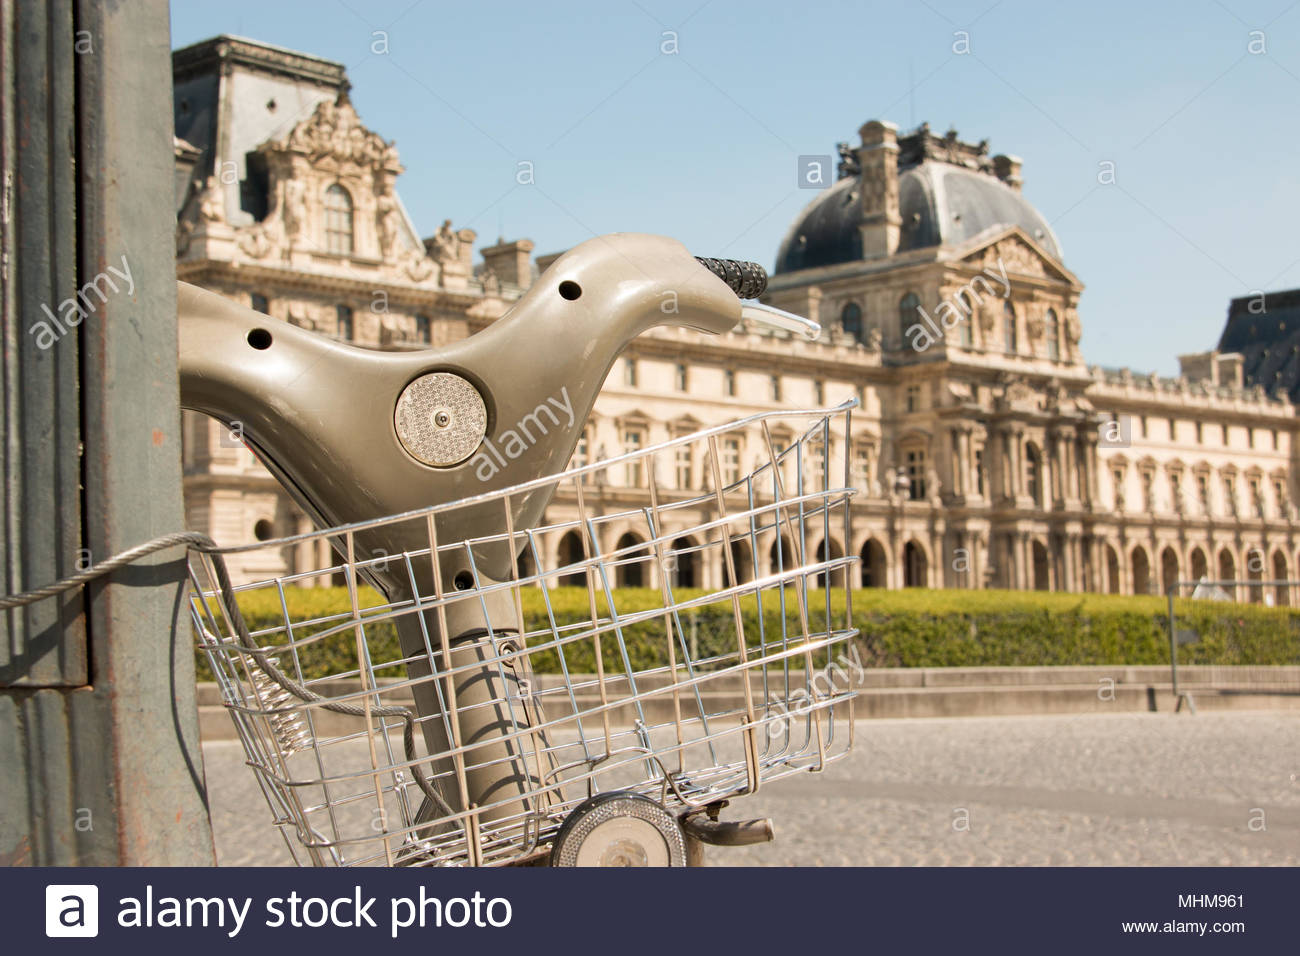 Visiting Paris by bicycle for hire, May 9, 2017. Bike and the Louvre museum. Stock Photo